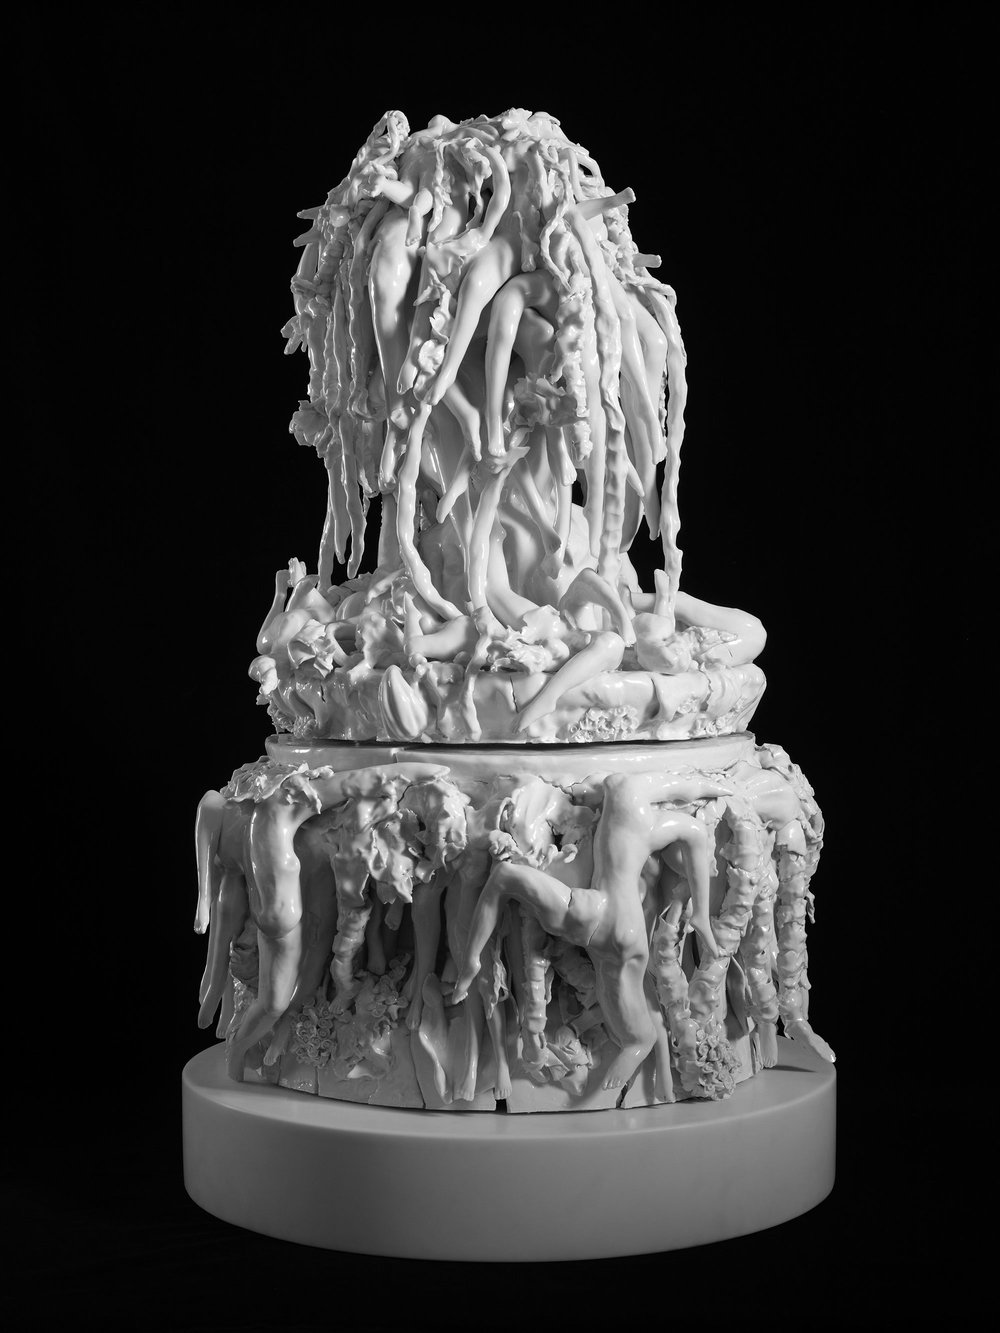 THE PARADISE OF DESPAIR; 2011; Porcelain; 37 3/8 x 23 5/8 x 24 7/16 inches (95 x 60 x 62 cm)